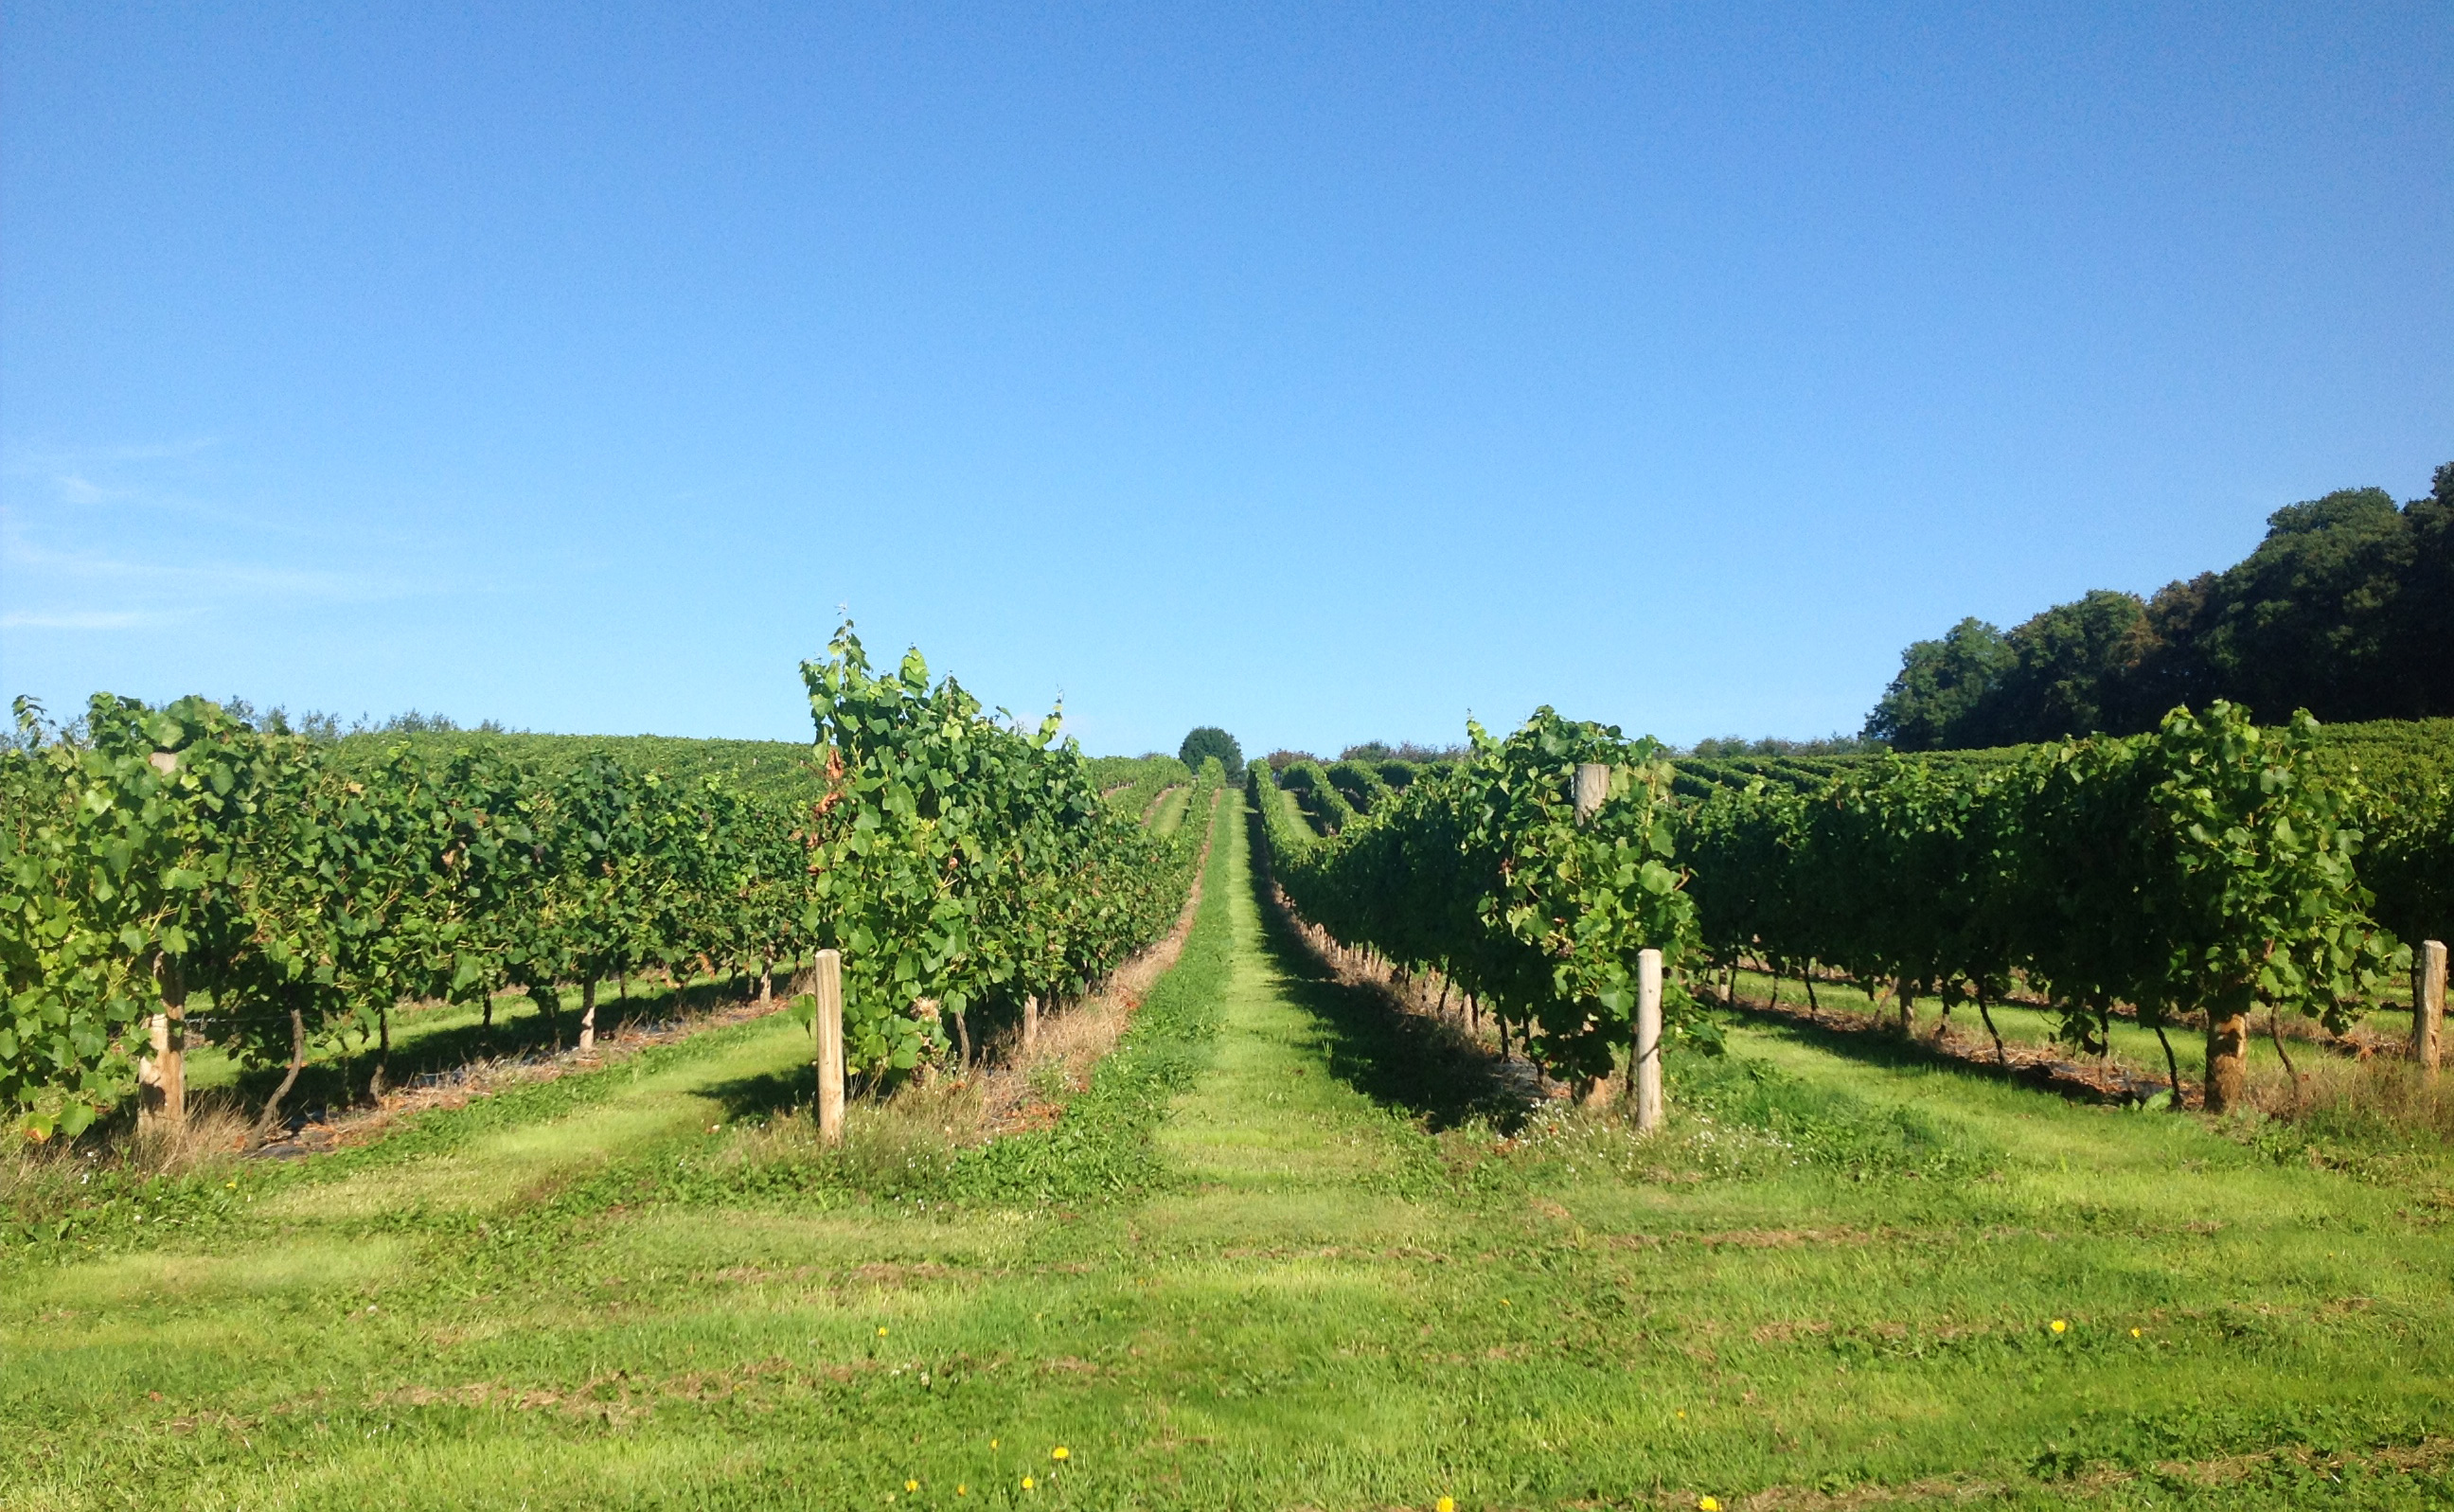 Vineyard image provided by Sixteen Ridges